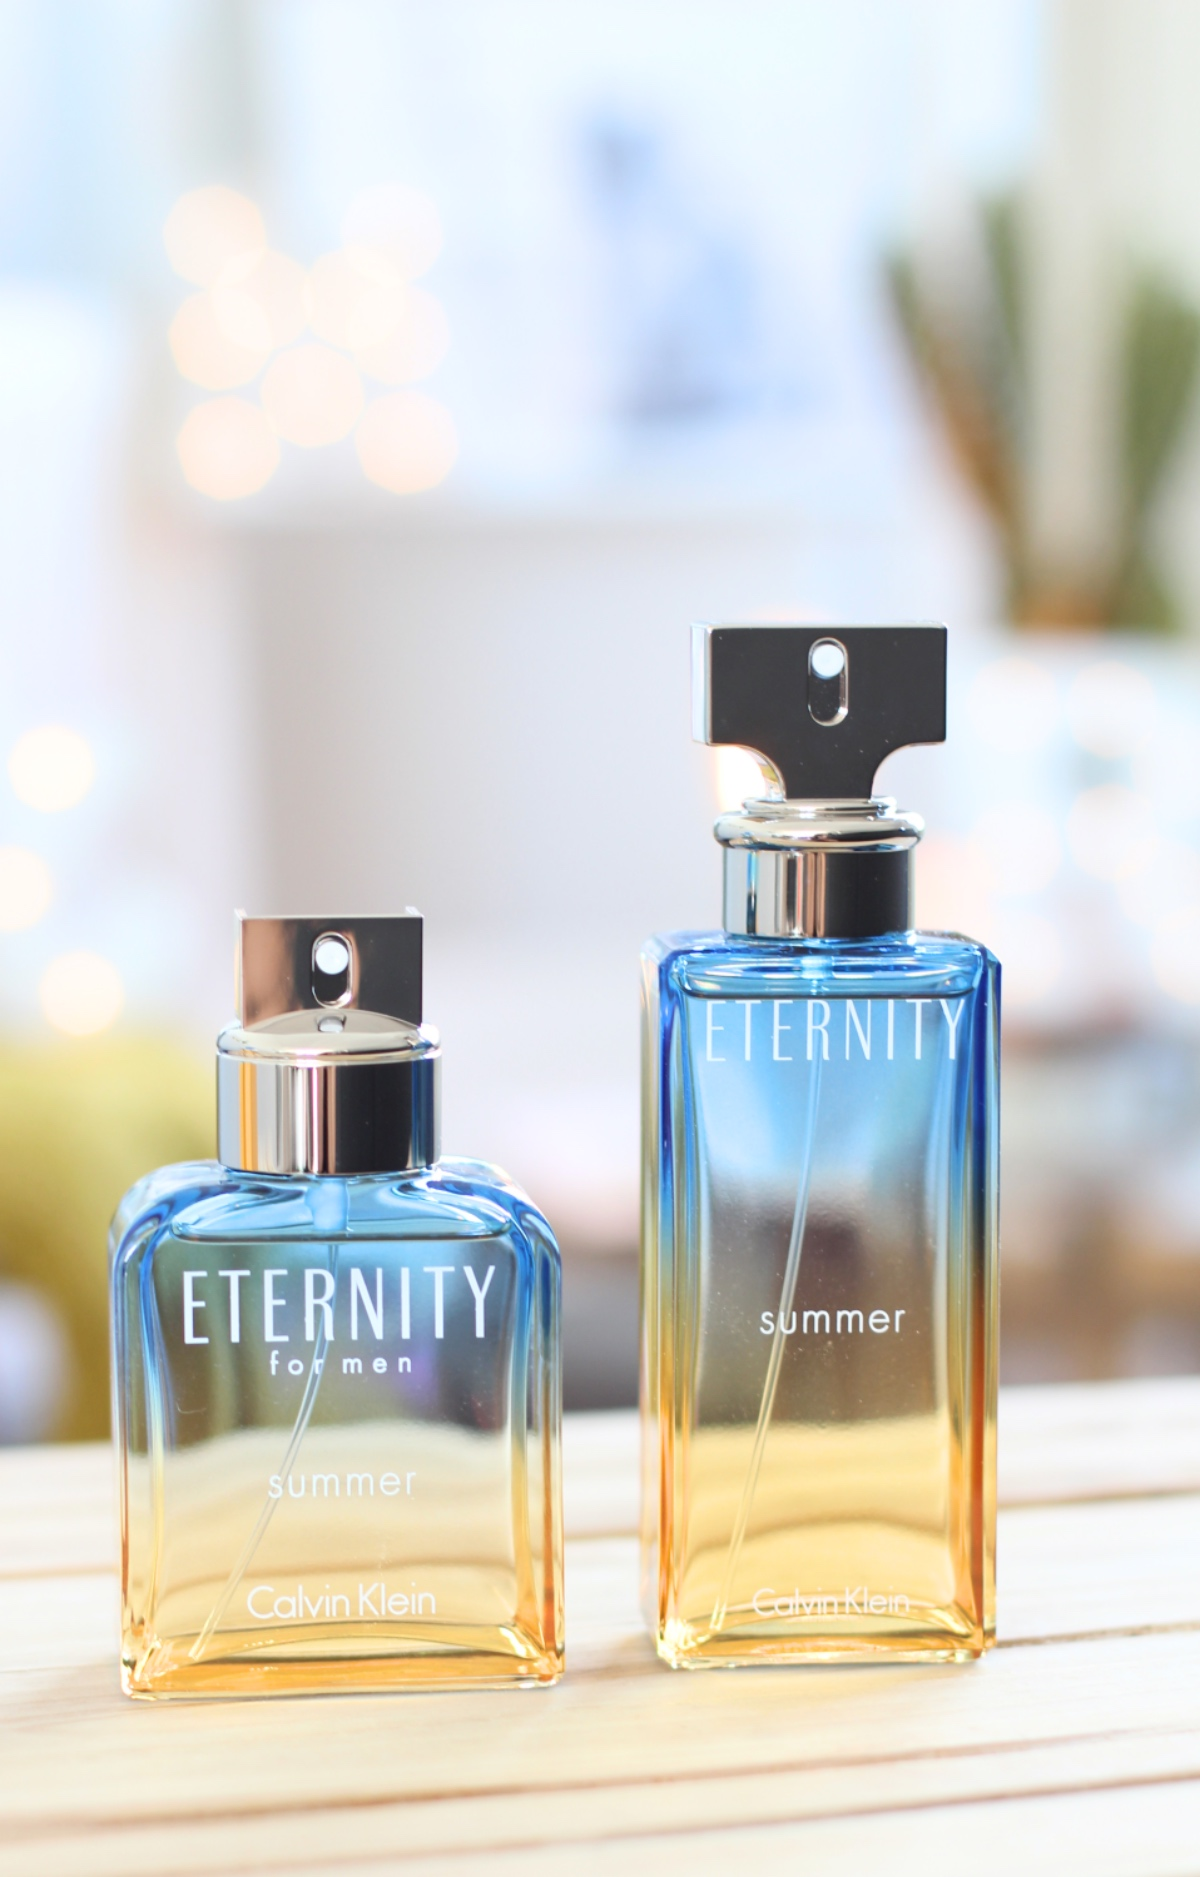 Calvin Klein Eternity Summer 2017 - for men and women